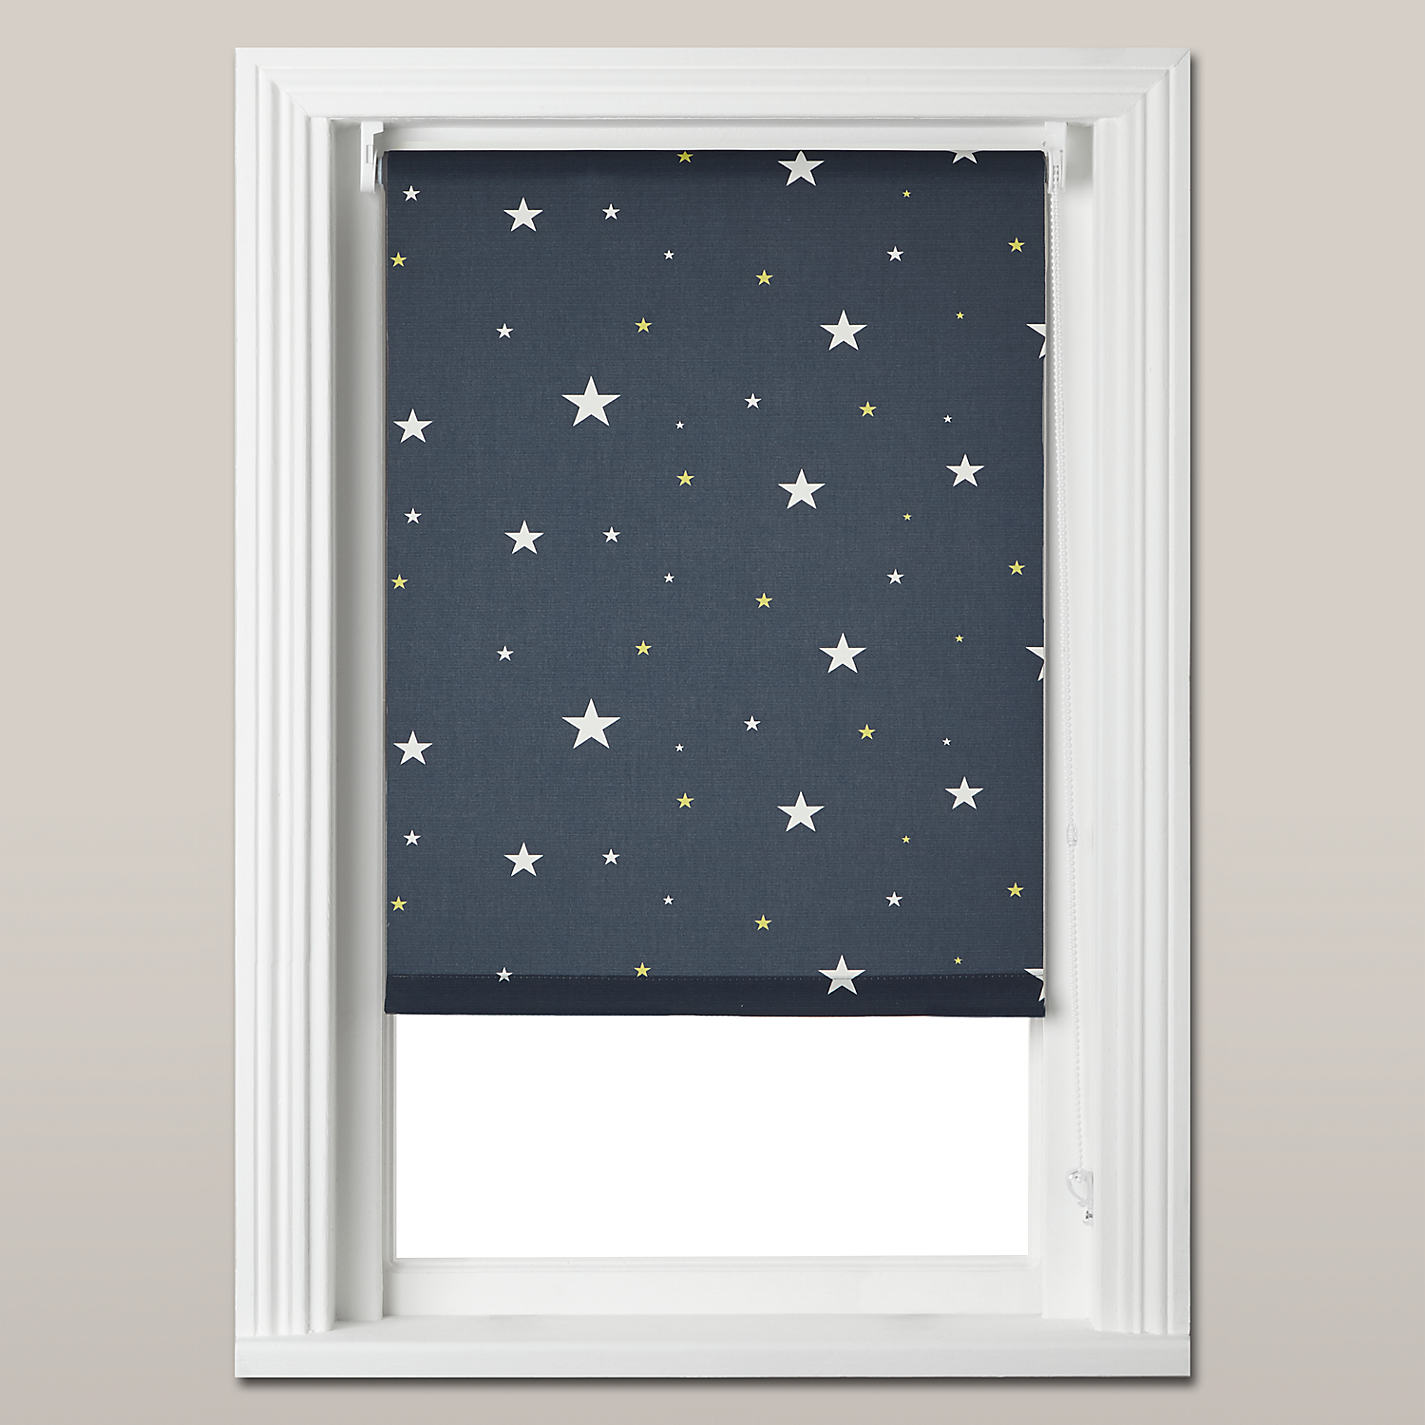 Cheap bathroom blinds uk - Buy John Lewis Starry Night Blackout Roller Blind Navy Online At Johnlewis Com